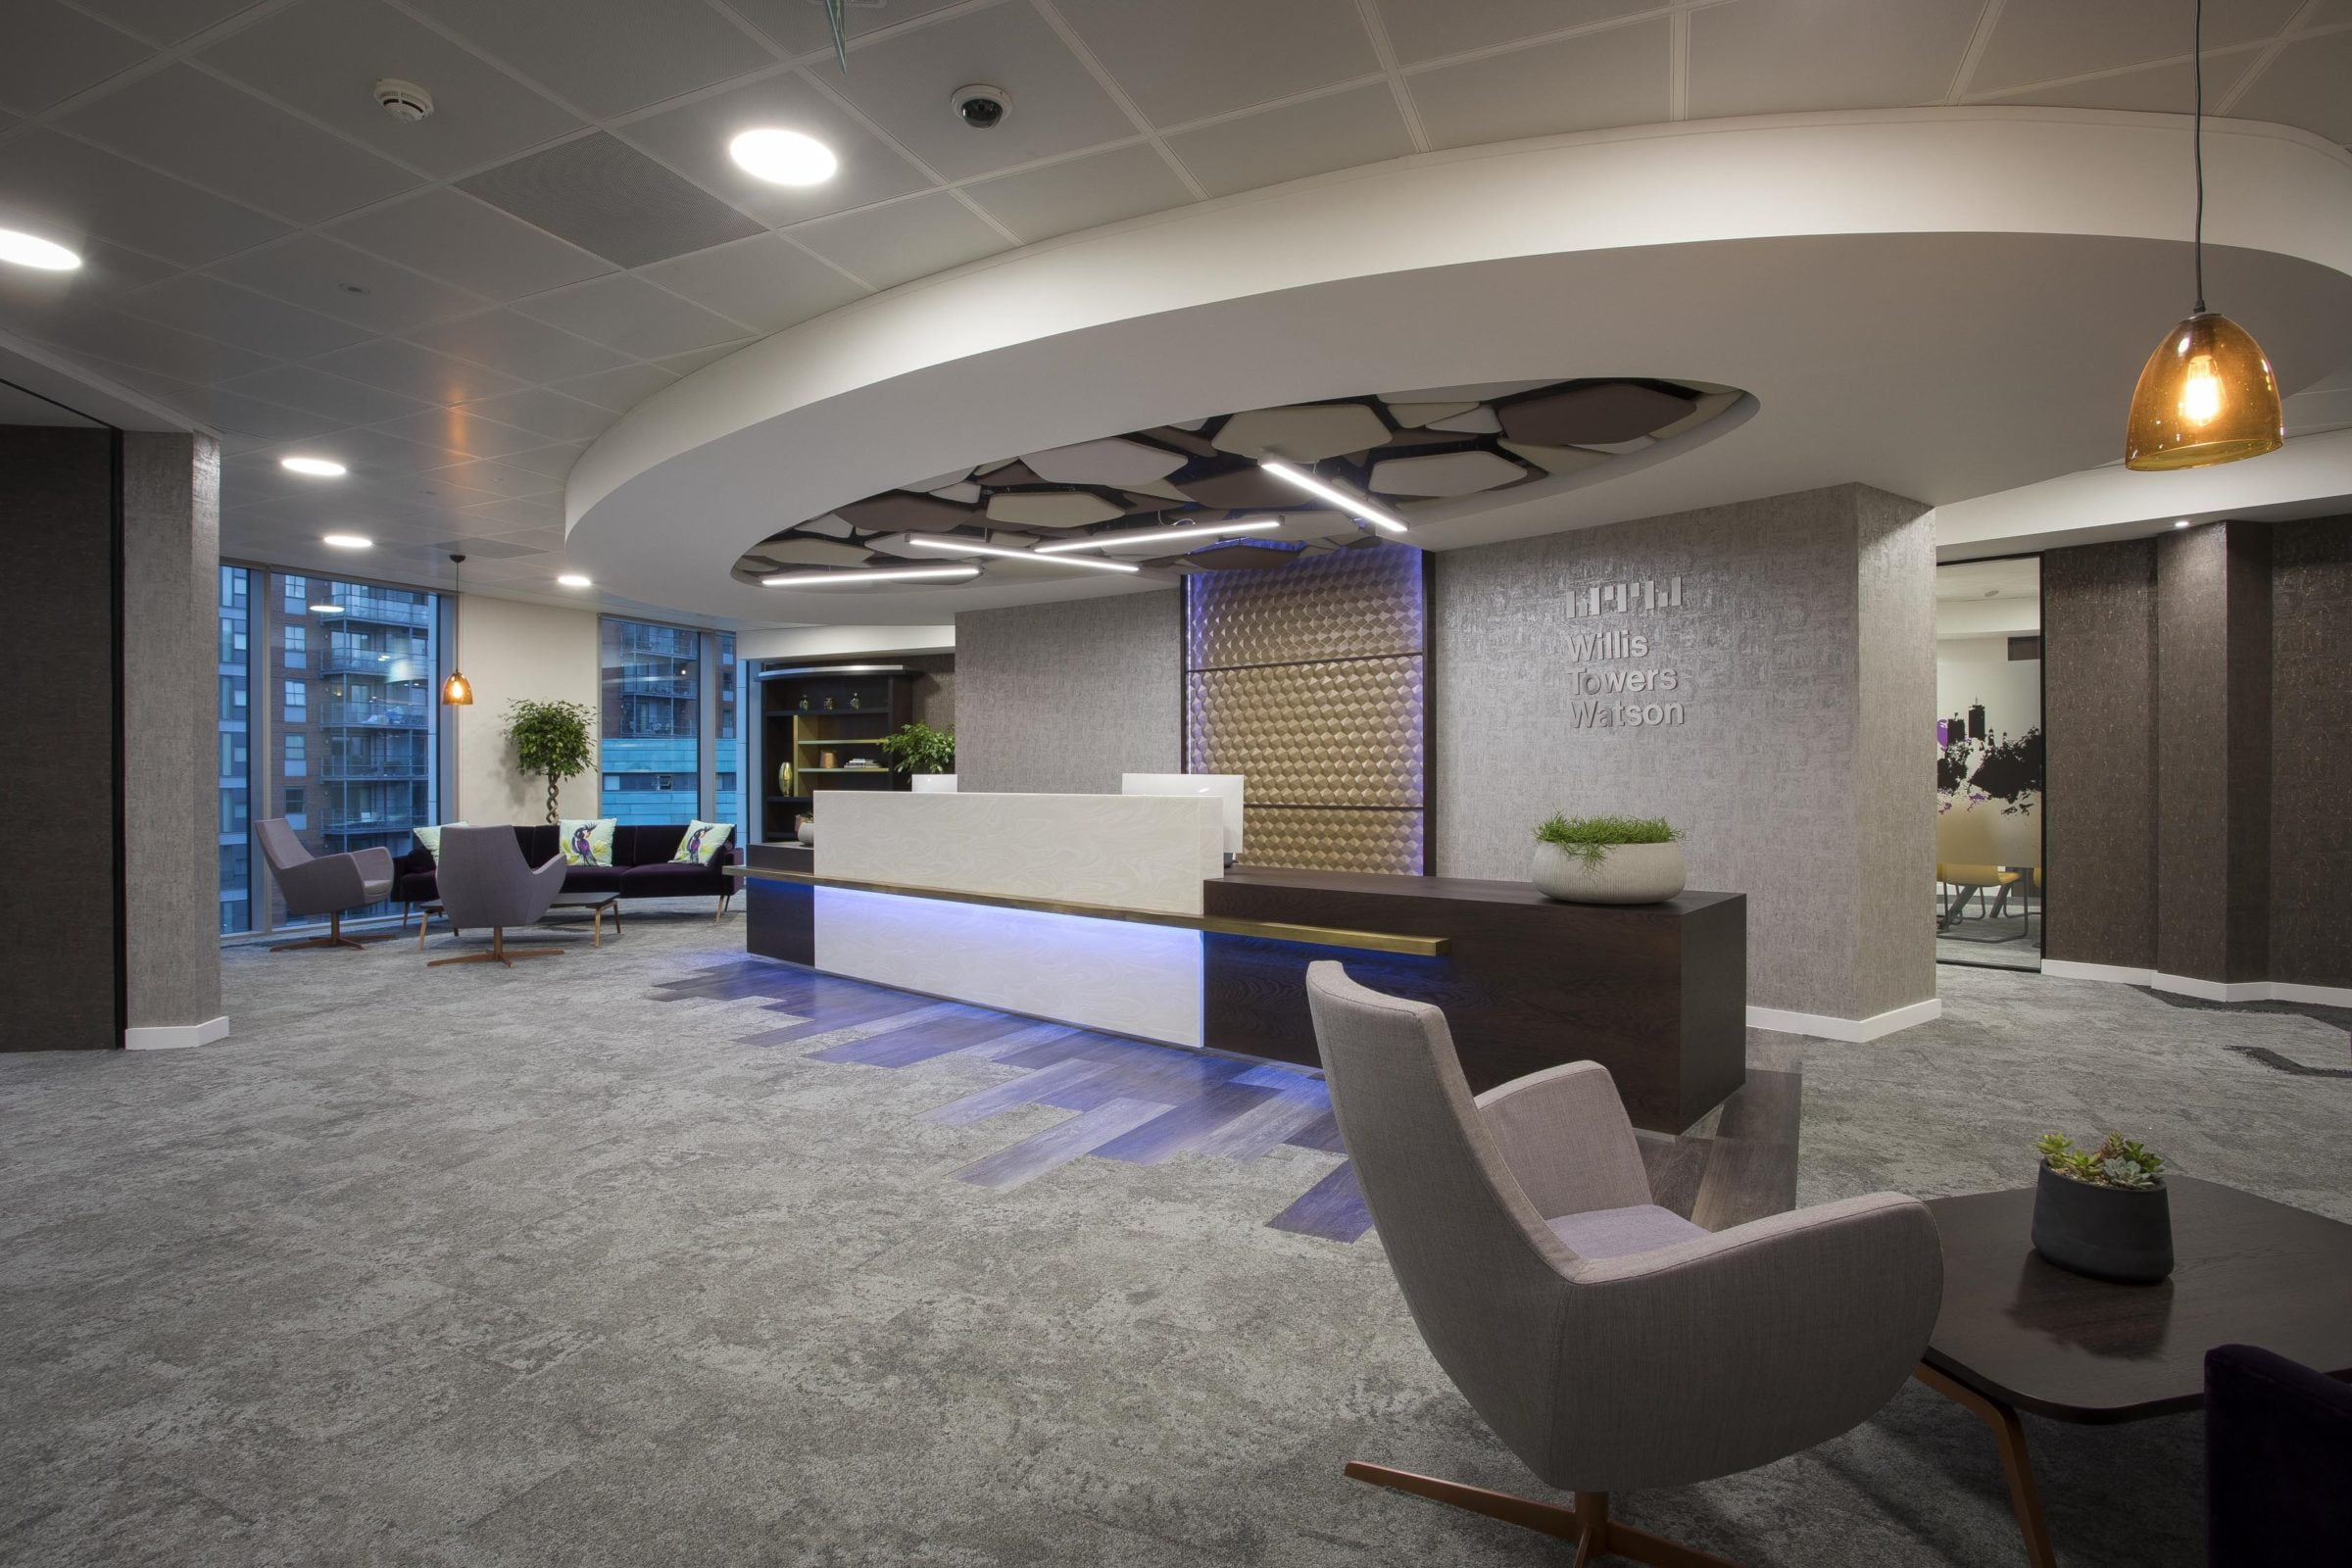 willis towers watson completes move to 5 wellington place